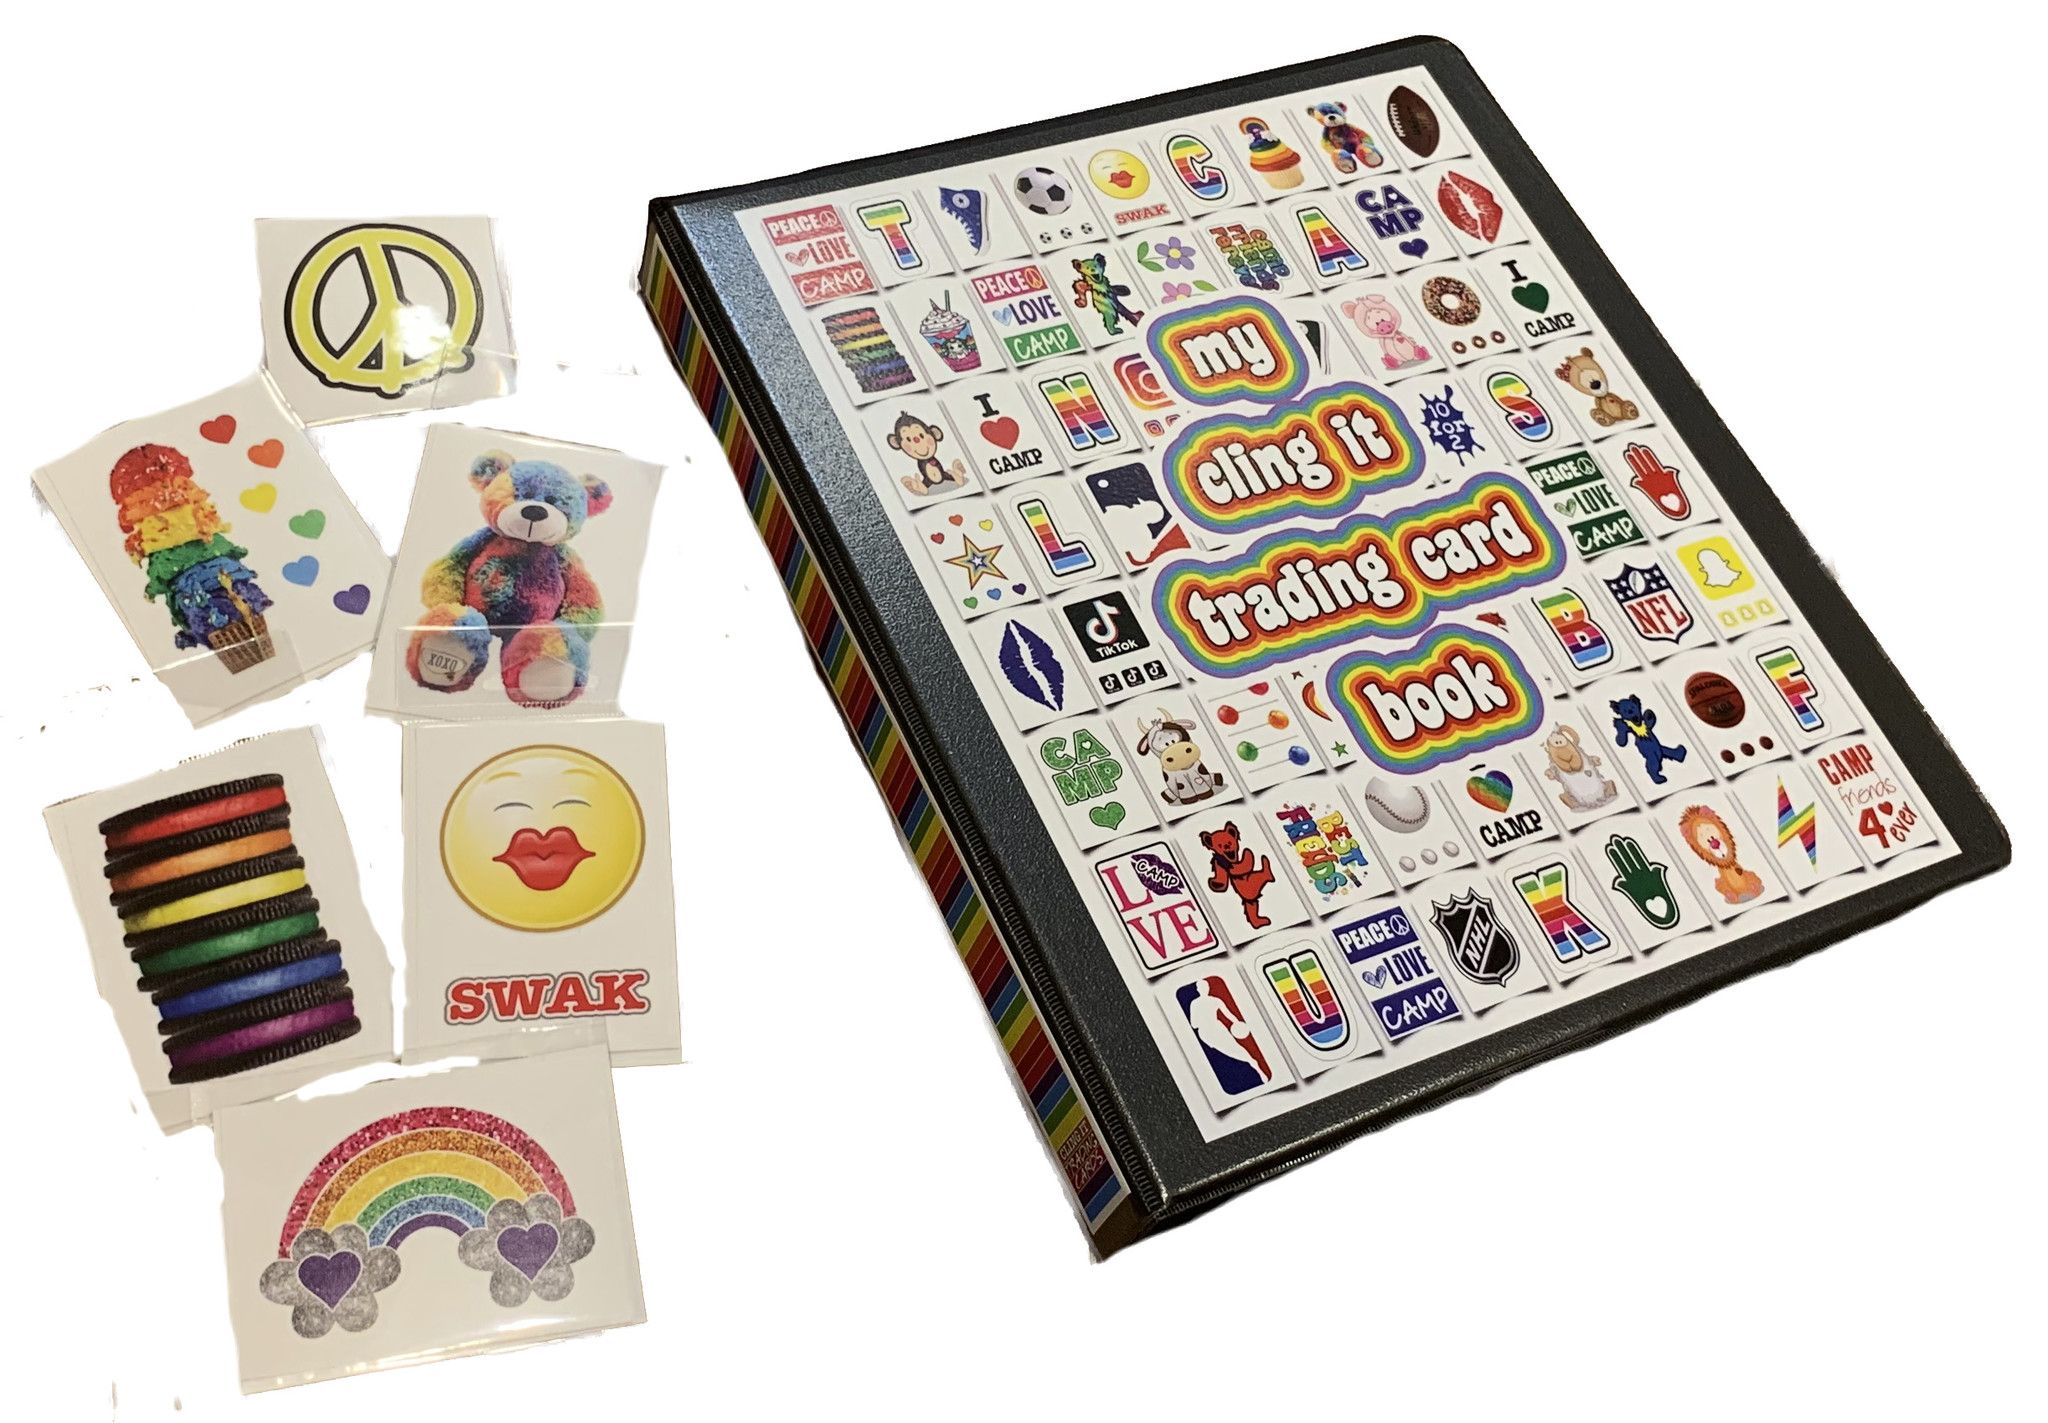 Cling it Sticker Trading Card Book